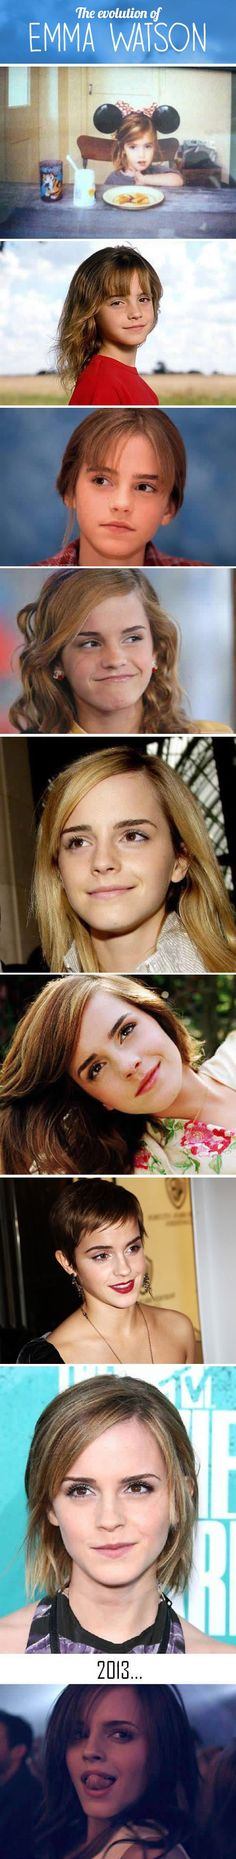 The evolution of Emma Watson. she is adorable!